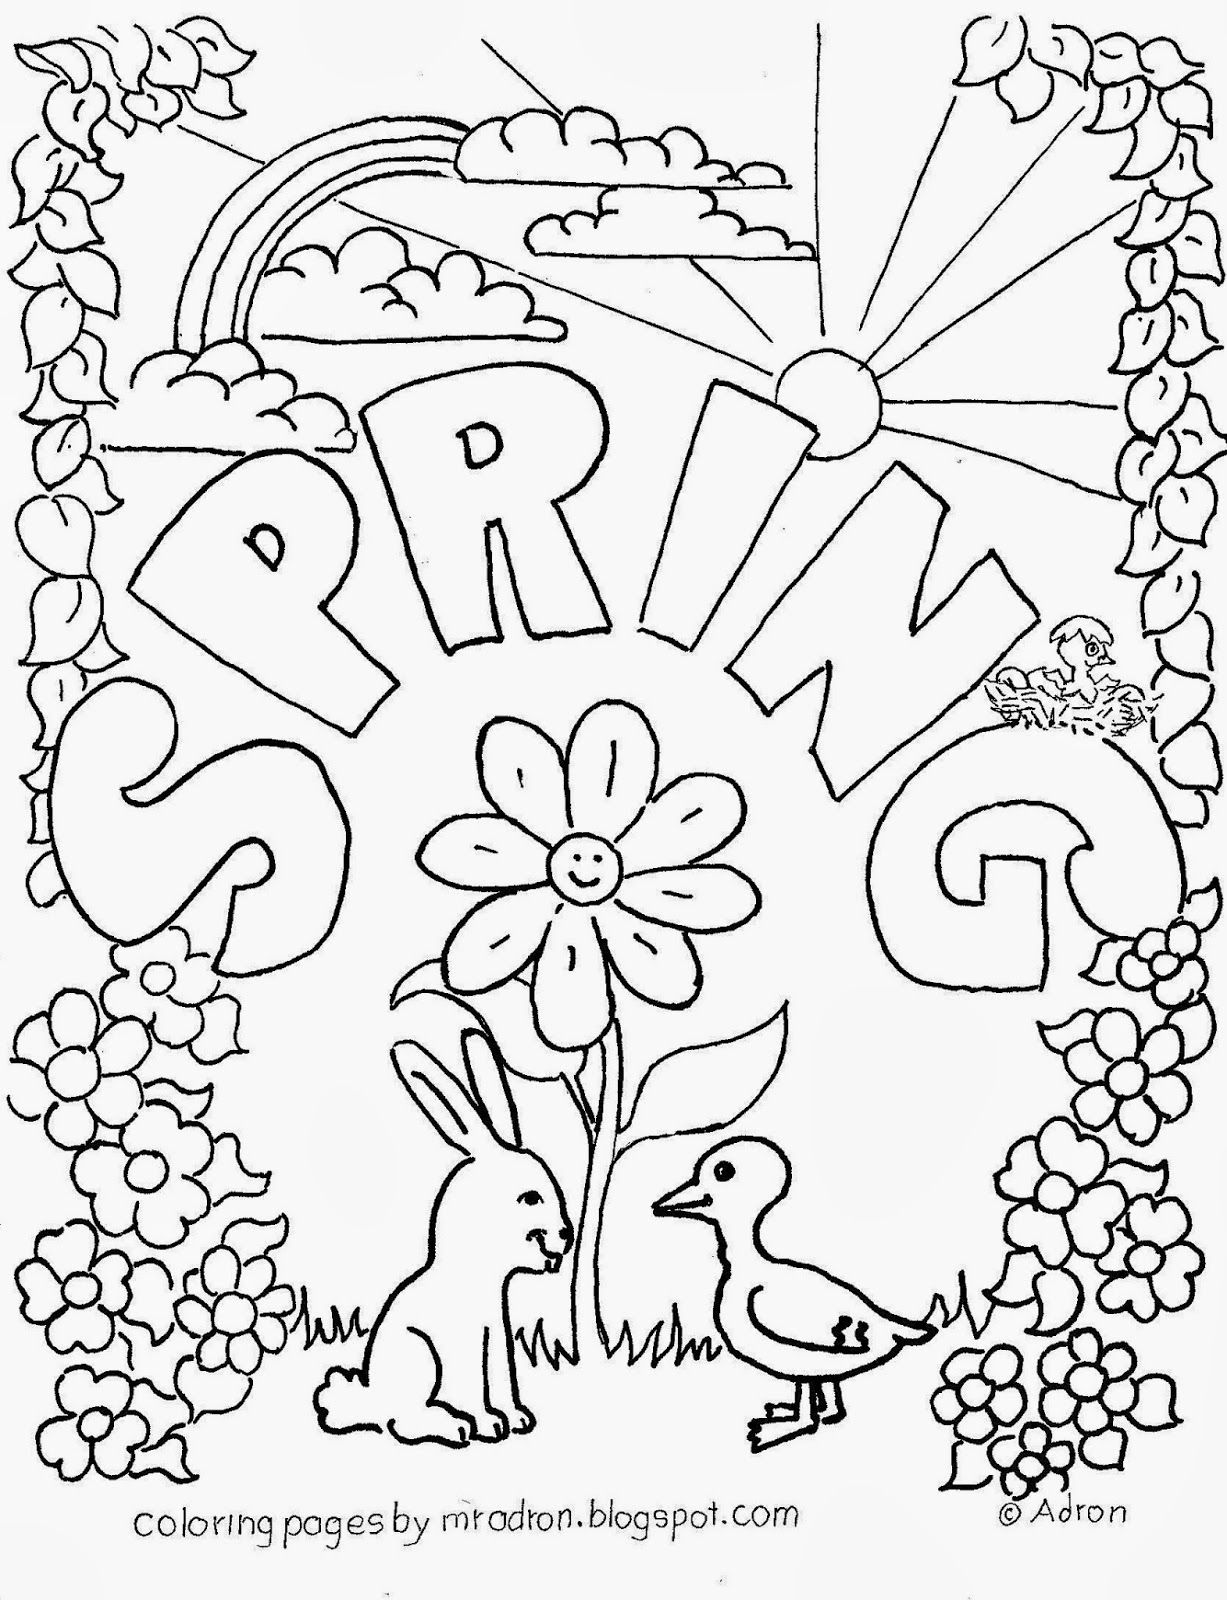 Free spring coloring page. See more at my blogger http